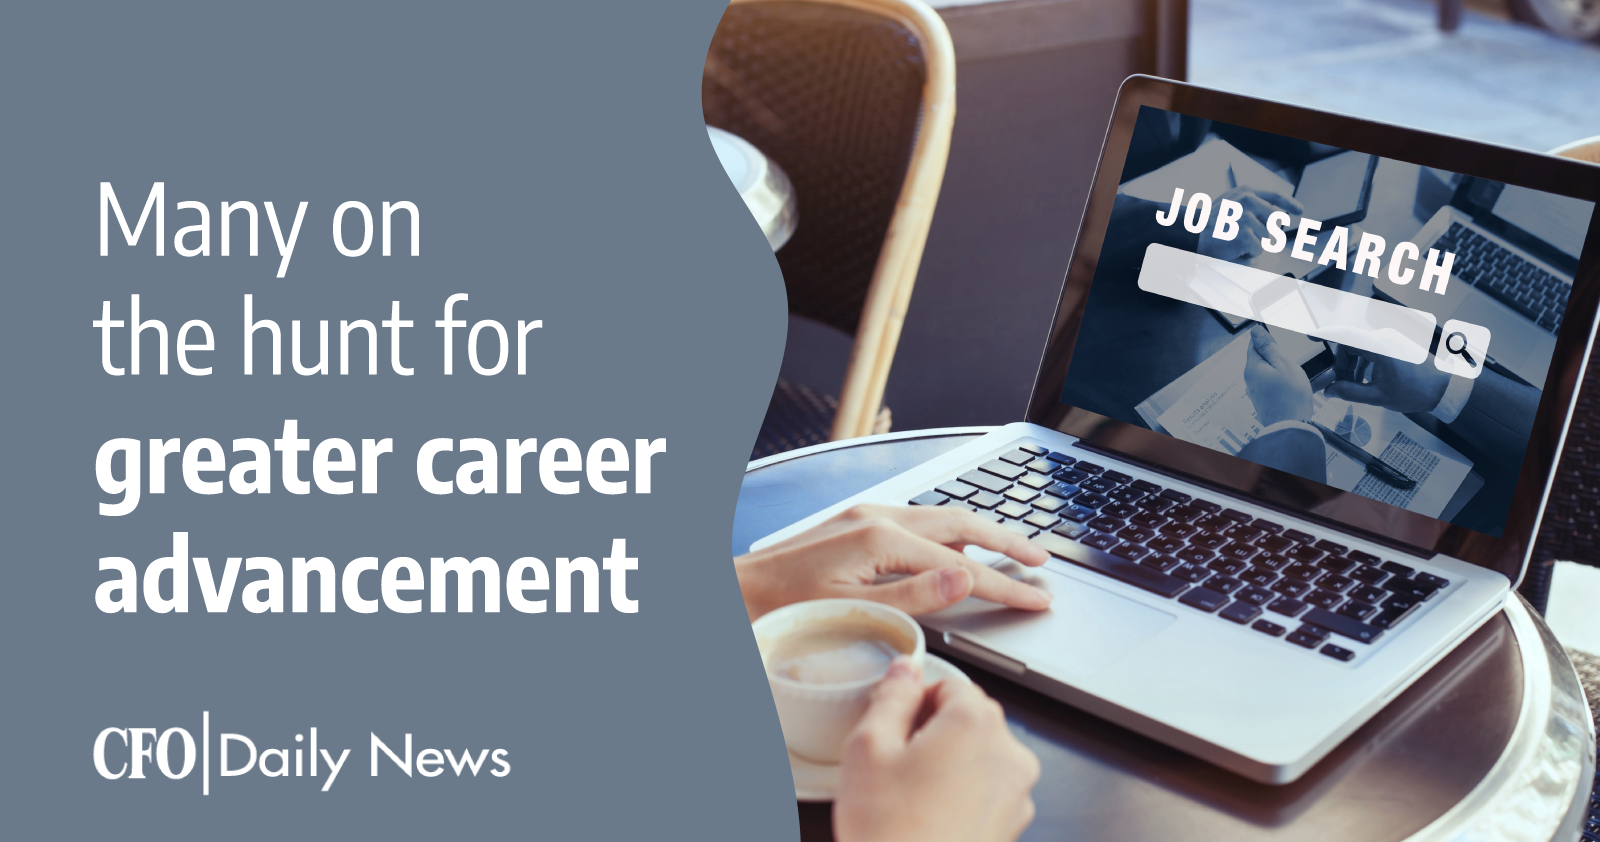 many on the hunt for greater career advancement